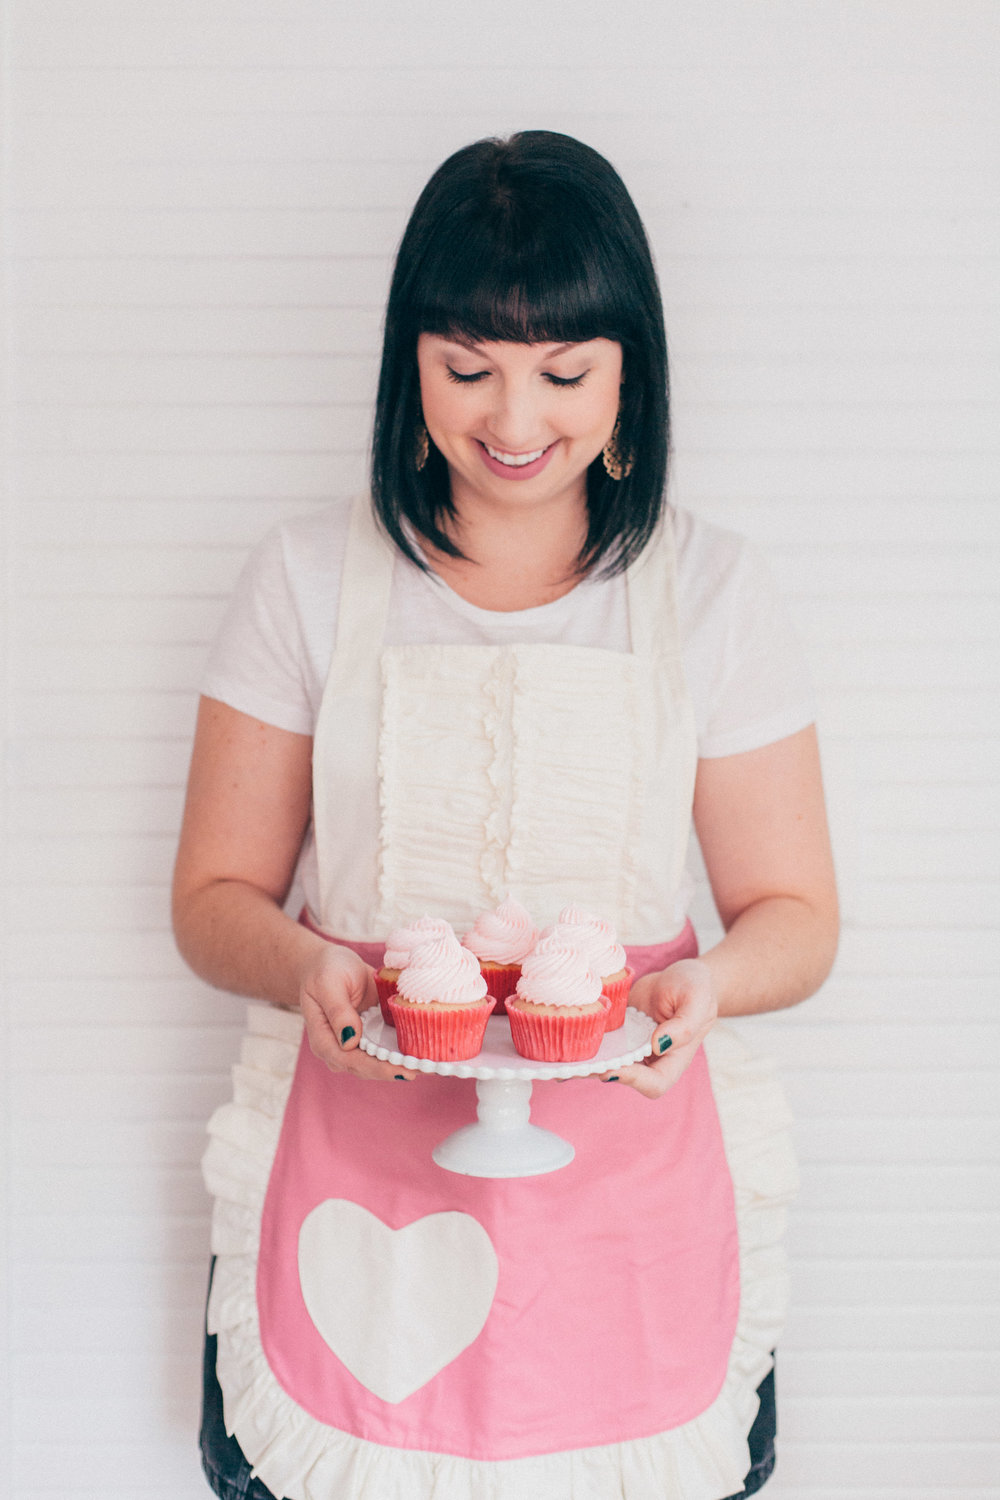 This Jenn Girl - Wandering Whisk Bakeshop 5